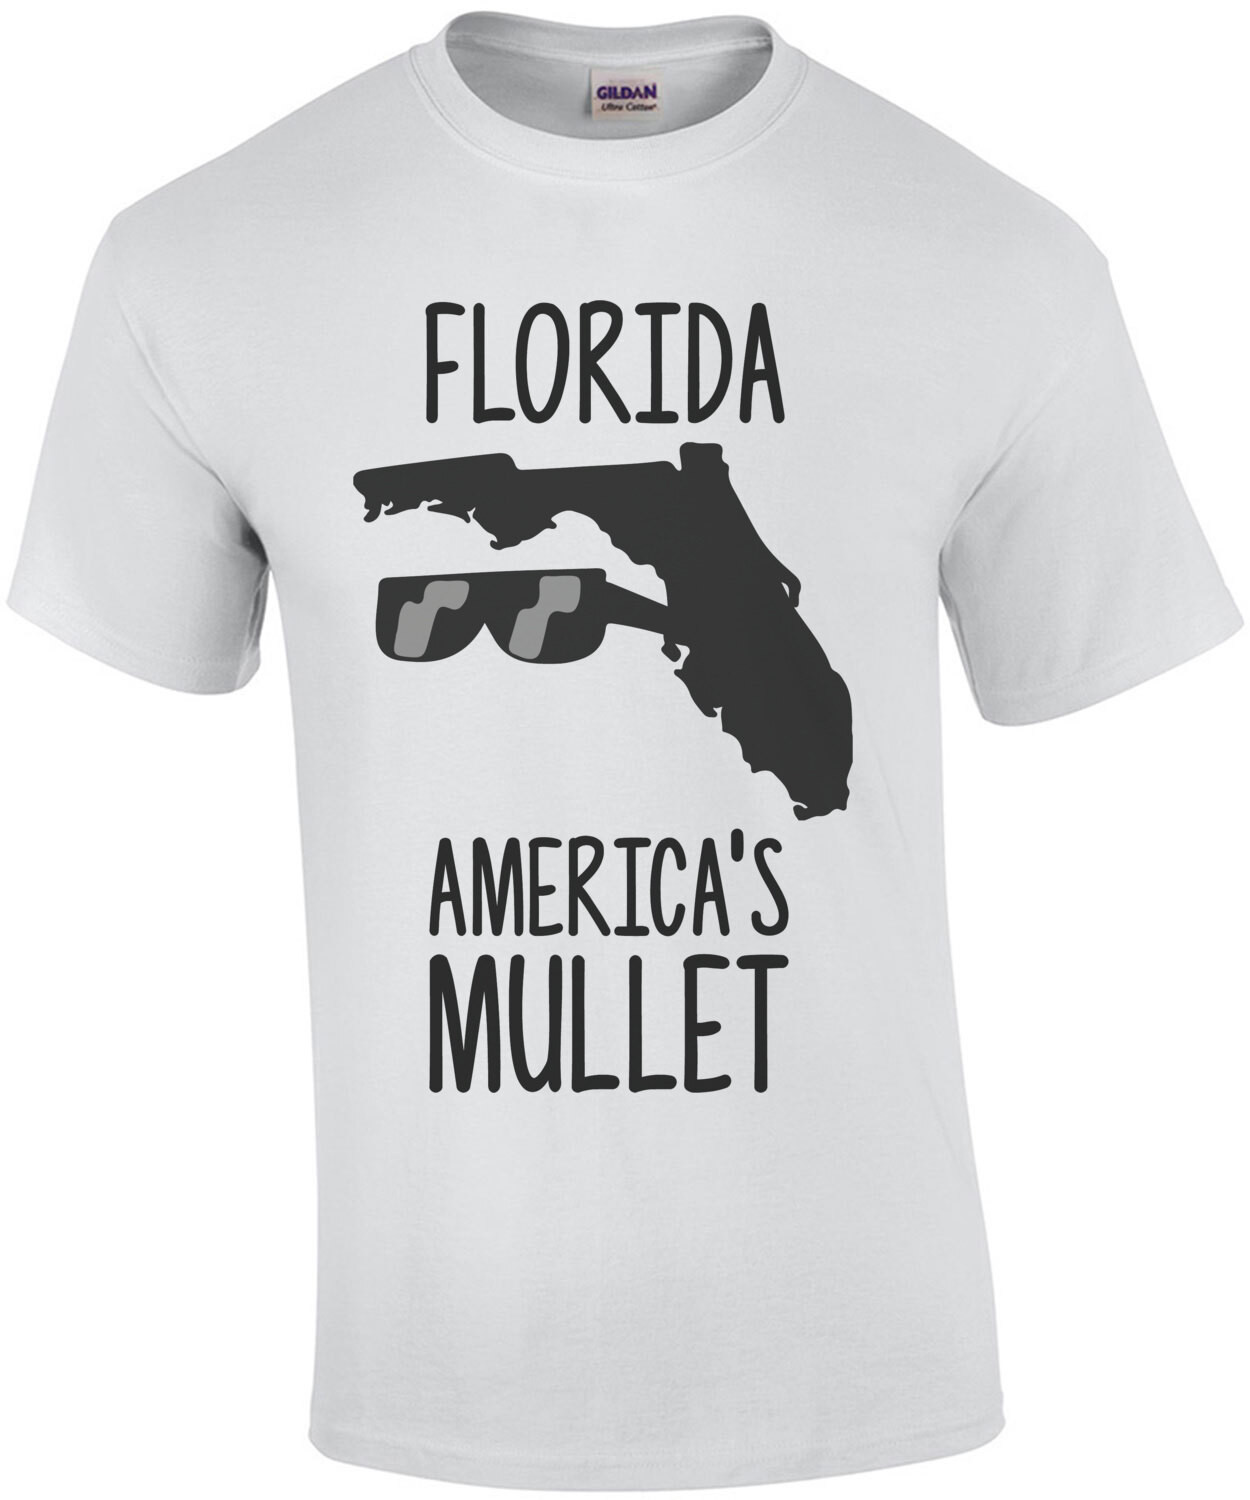 Florida - America's mullet funny florida t-shirt